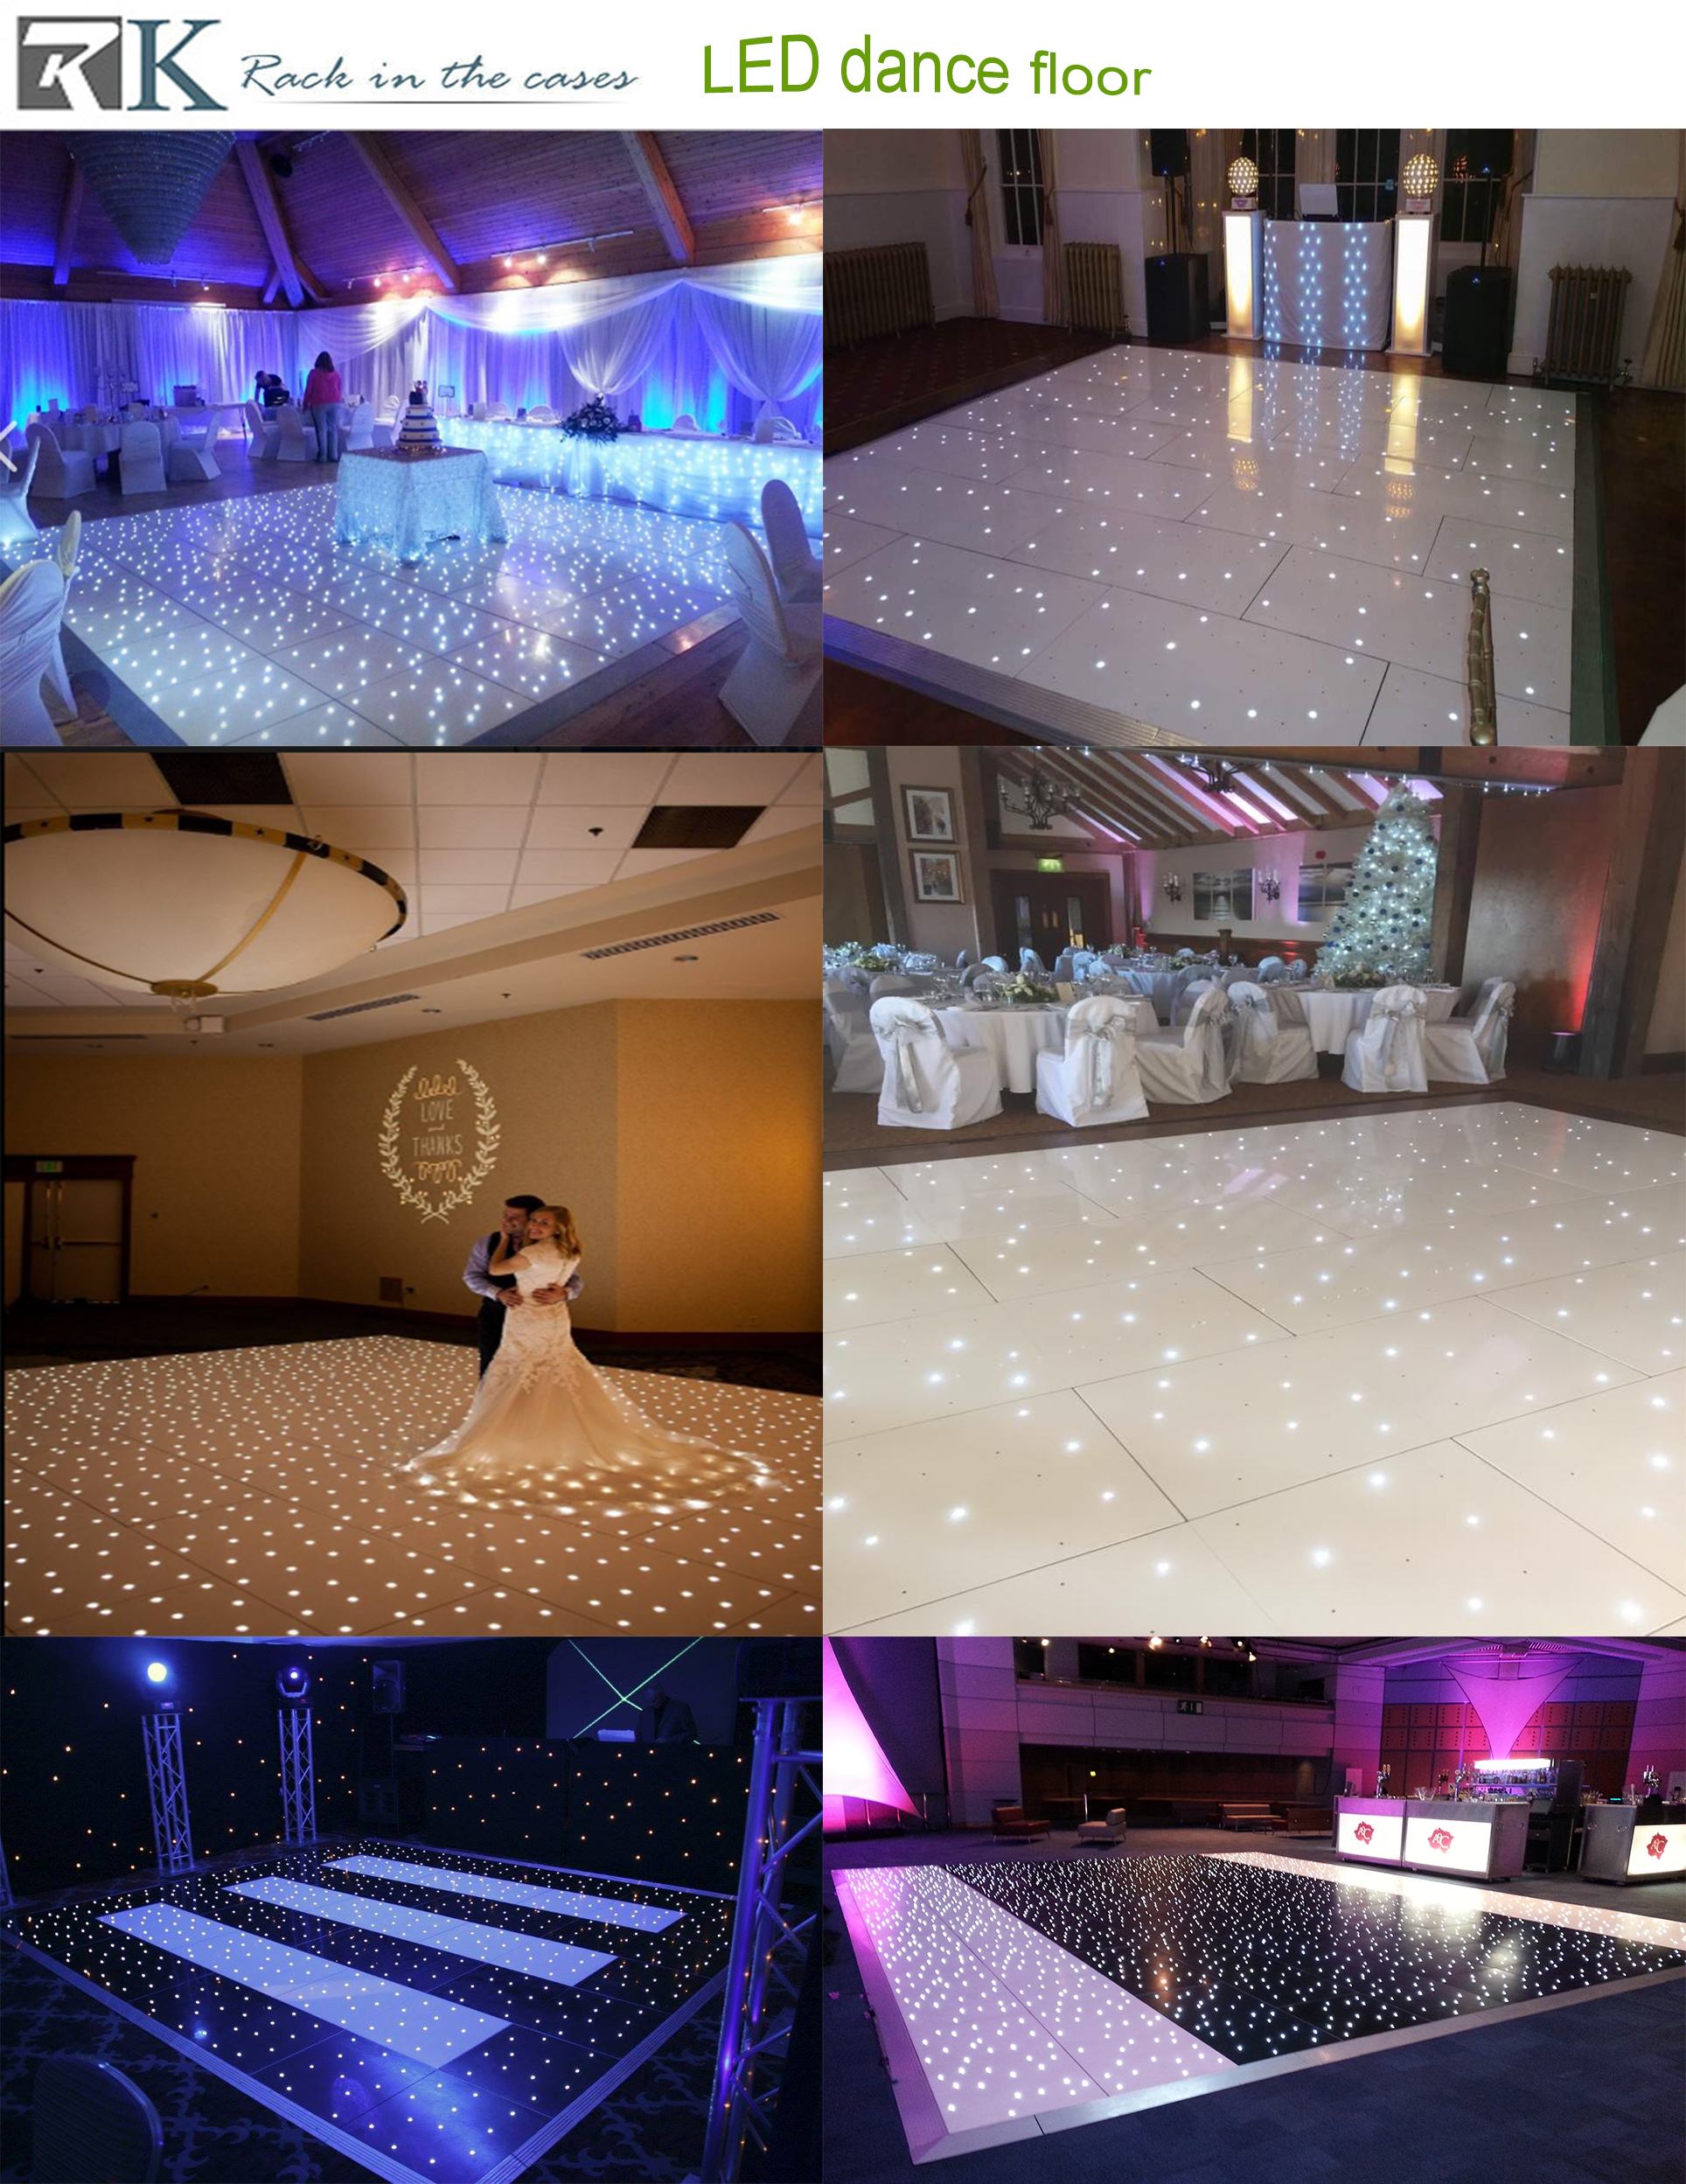 LED dance floor1.jpg